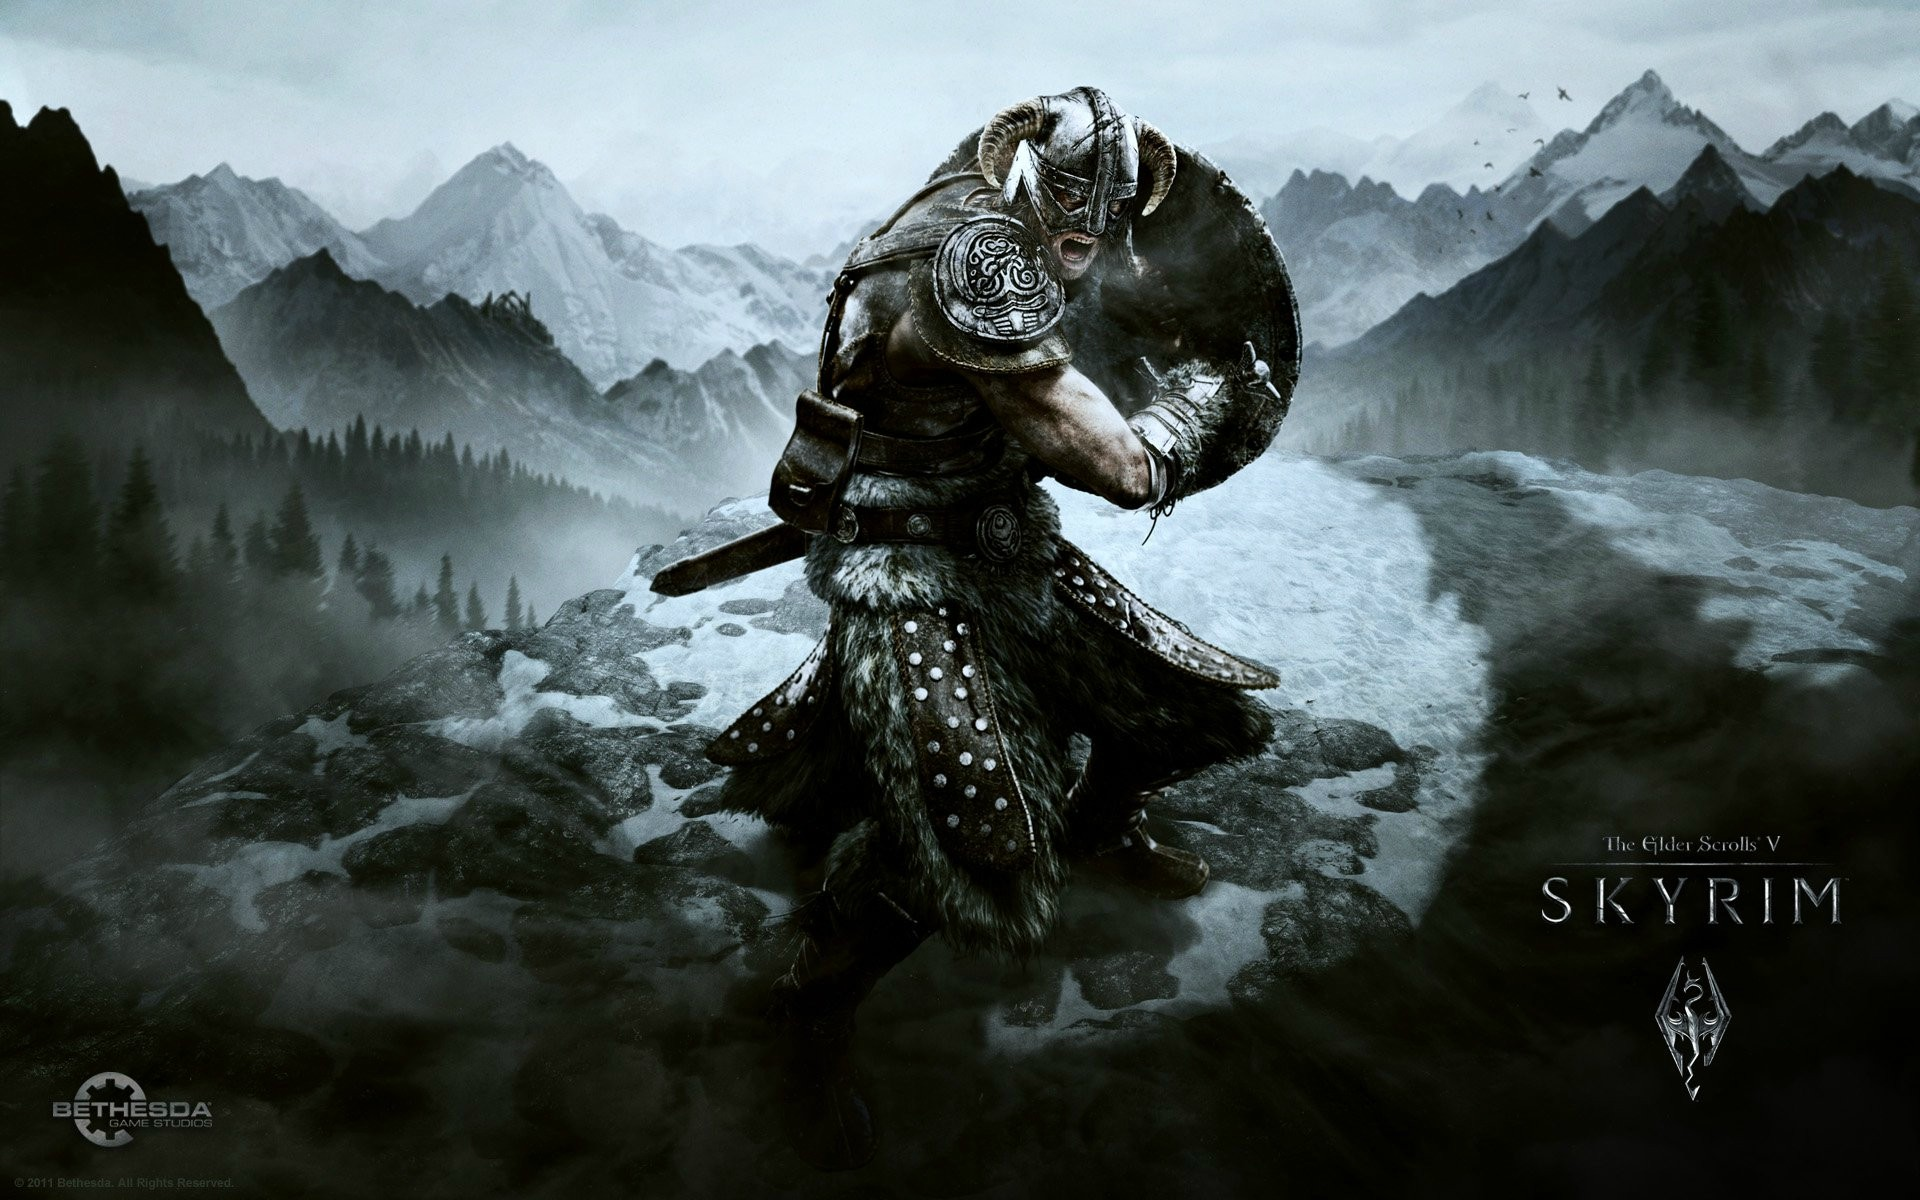 The Elder Scrolls V: Skyrim Wallpapers